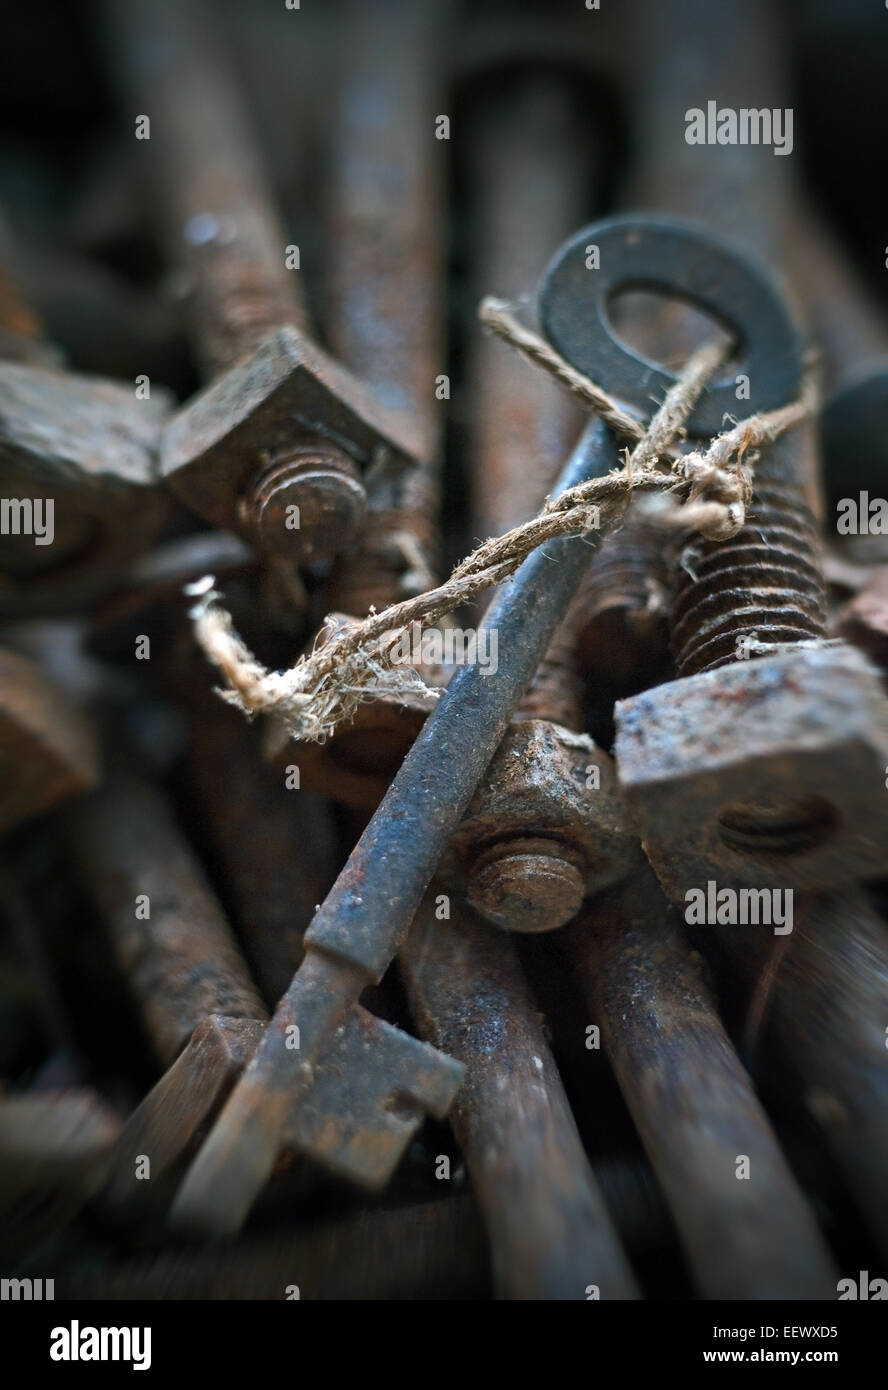 old key hidden in rusty bolts - Stock Image